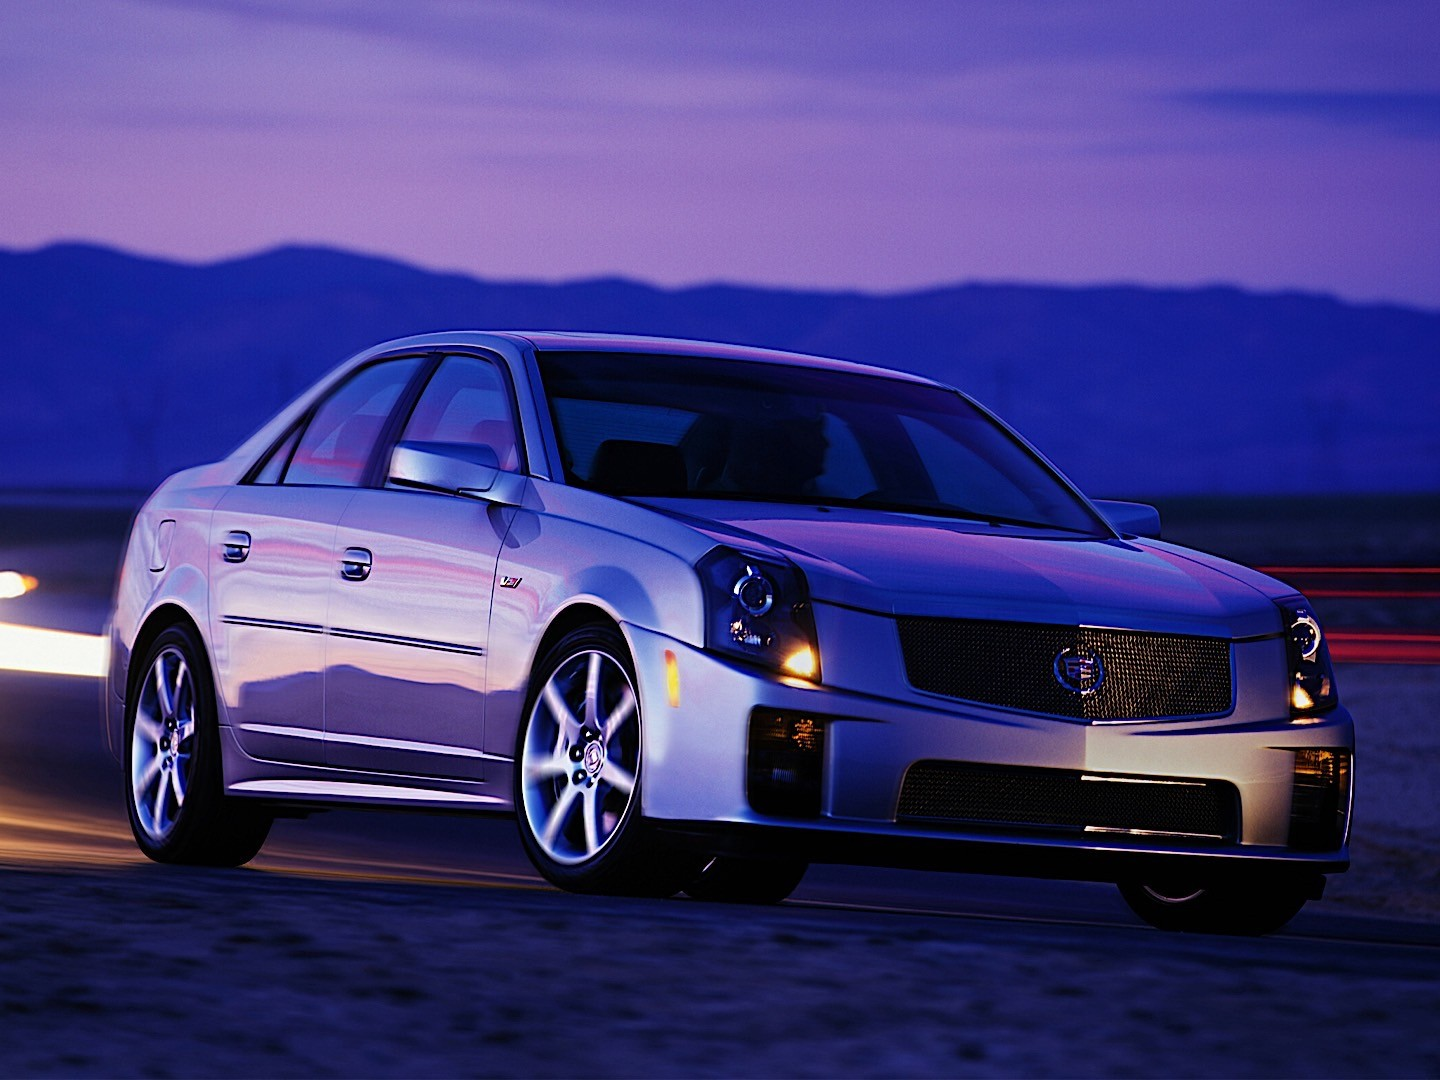 2021 cadillac cts v research new spesification 2021